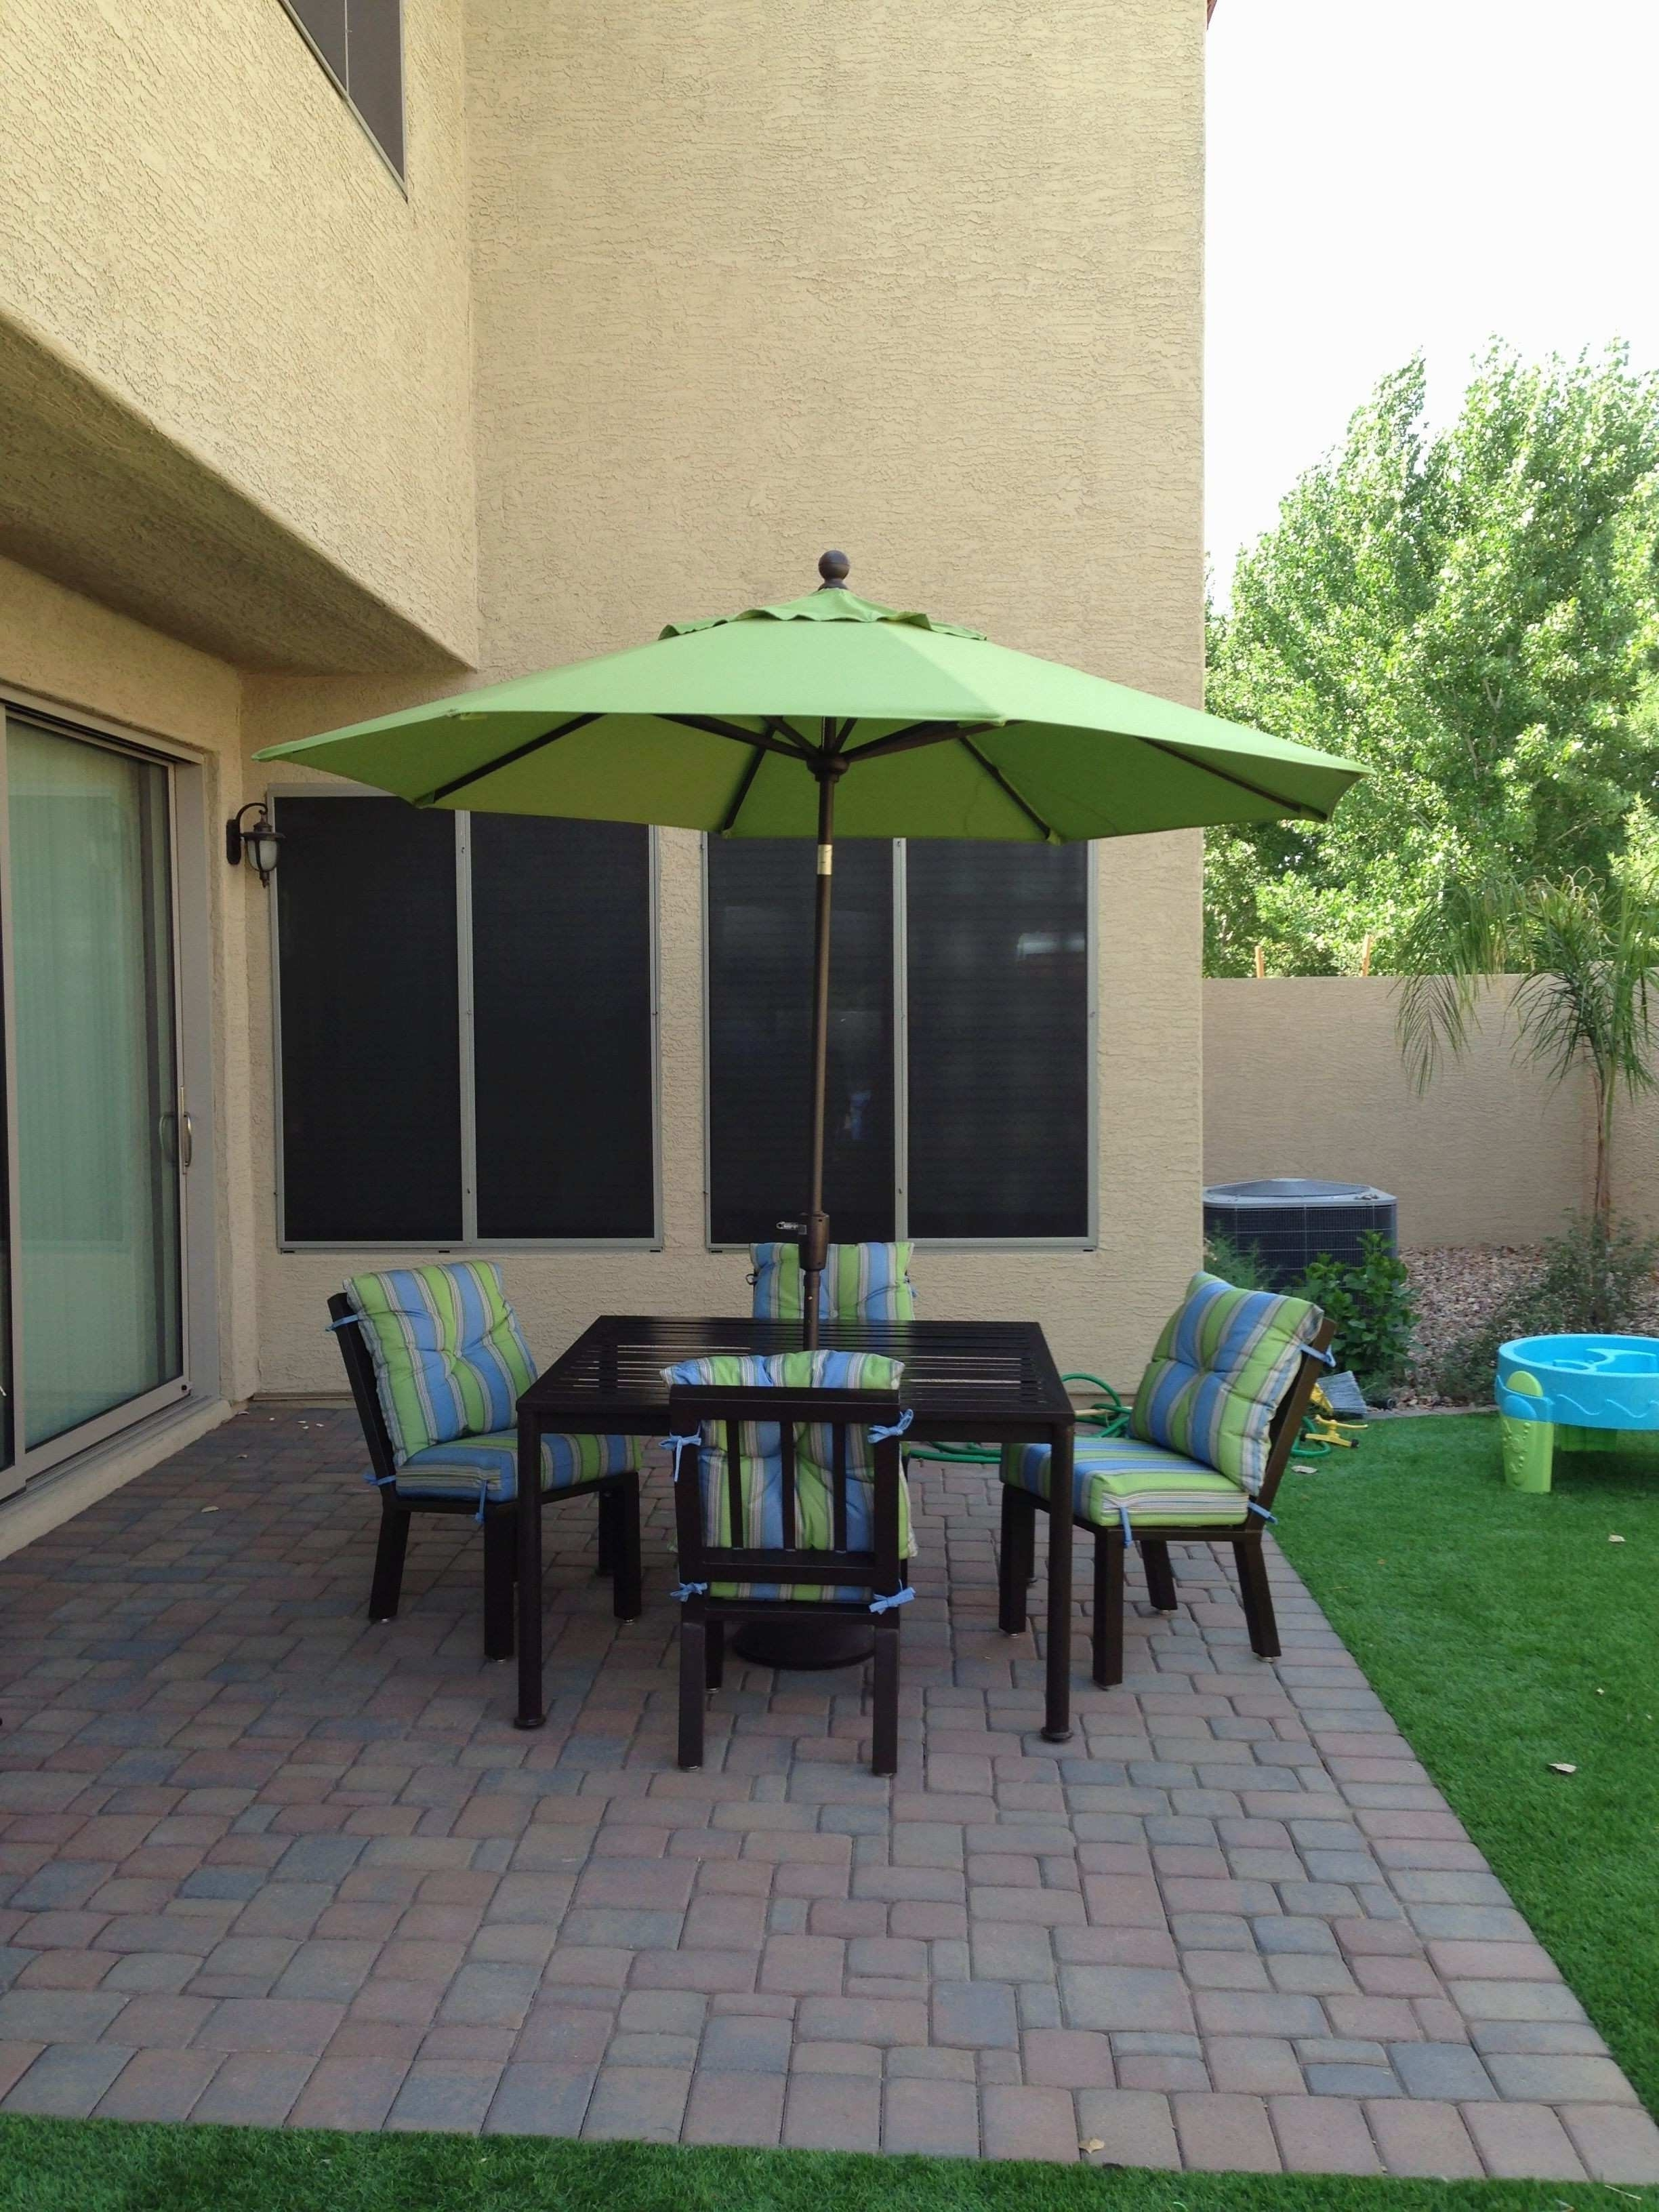 Garden Treasures Patio Umbrella Beautiful 26 Lovely Treasure Garden Regarding Well Known Garden Treasures Patio Umbrellas (Gallery 20 of 20)